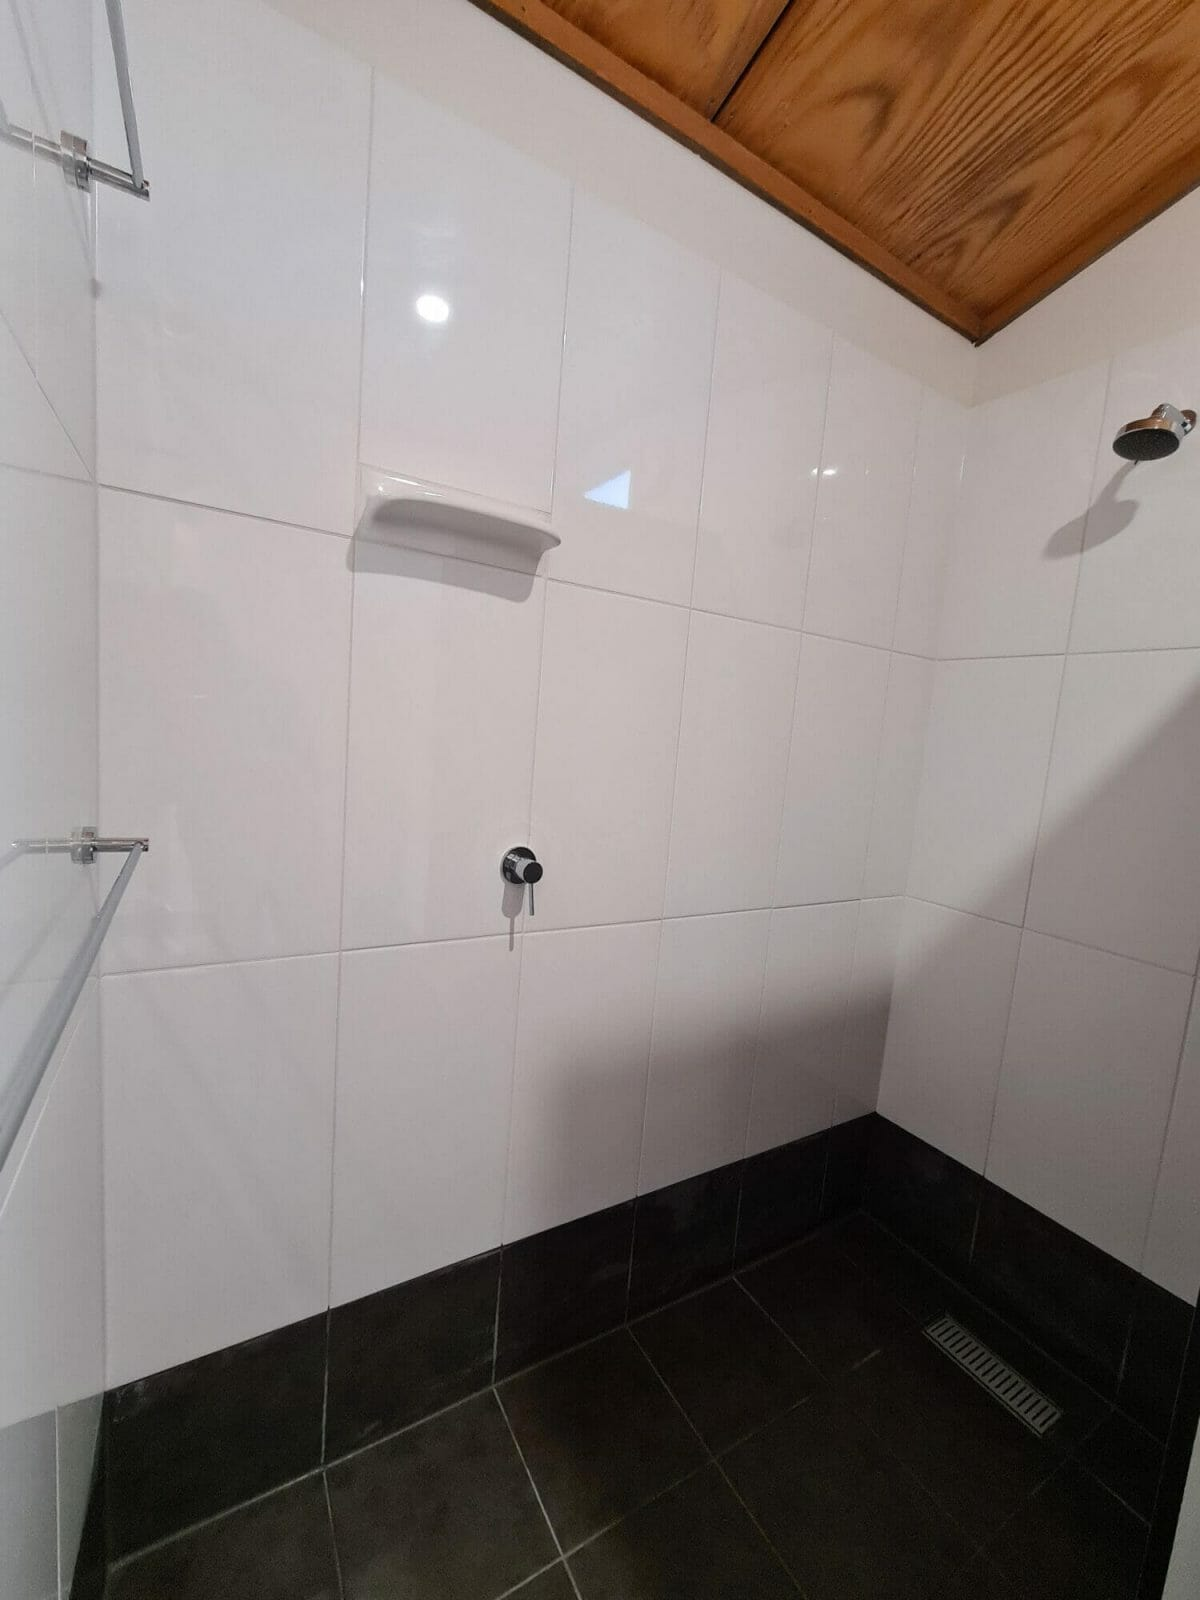 The Bay Cottage - Shower - Accommodation in Bremer Bay - 9 Roderick Street